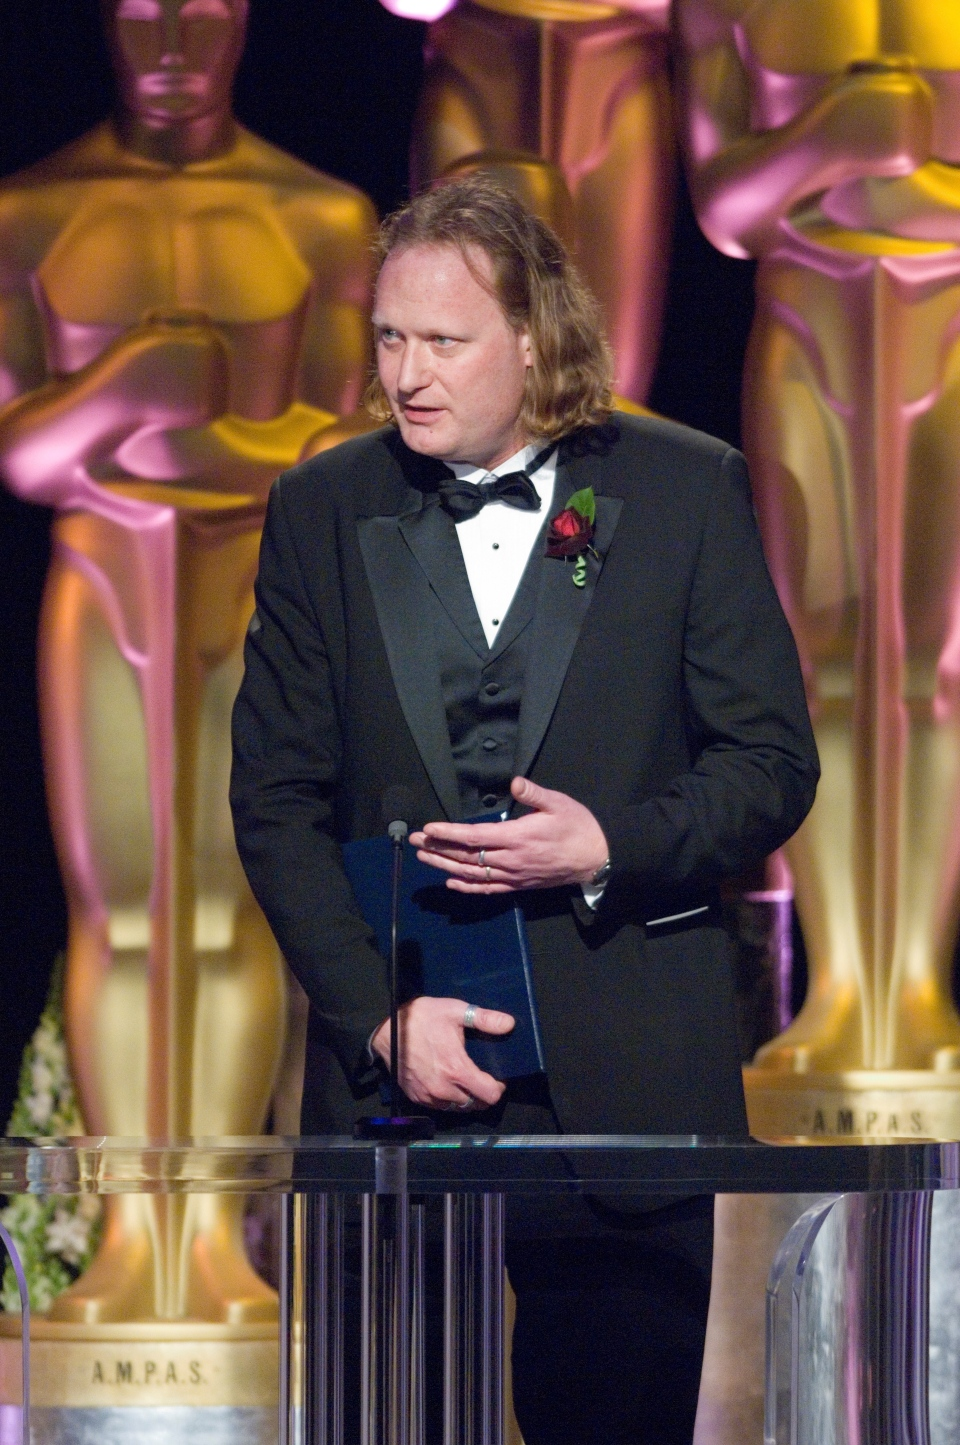 Canadian graphics researcher Jos Stam receives a 2006 Sci-Tech Oscar from the Academy of Motion Picture Arts and Sciences in a handout photo. THE CANADIAN PRESS/HO-Academy of Motion Picture Arts and Sciences MANDATORY CREDIT